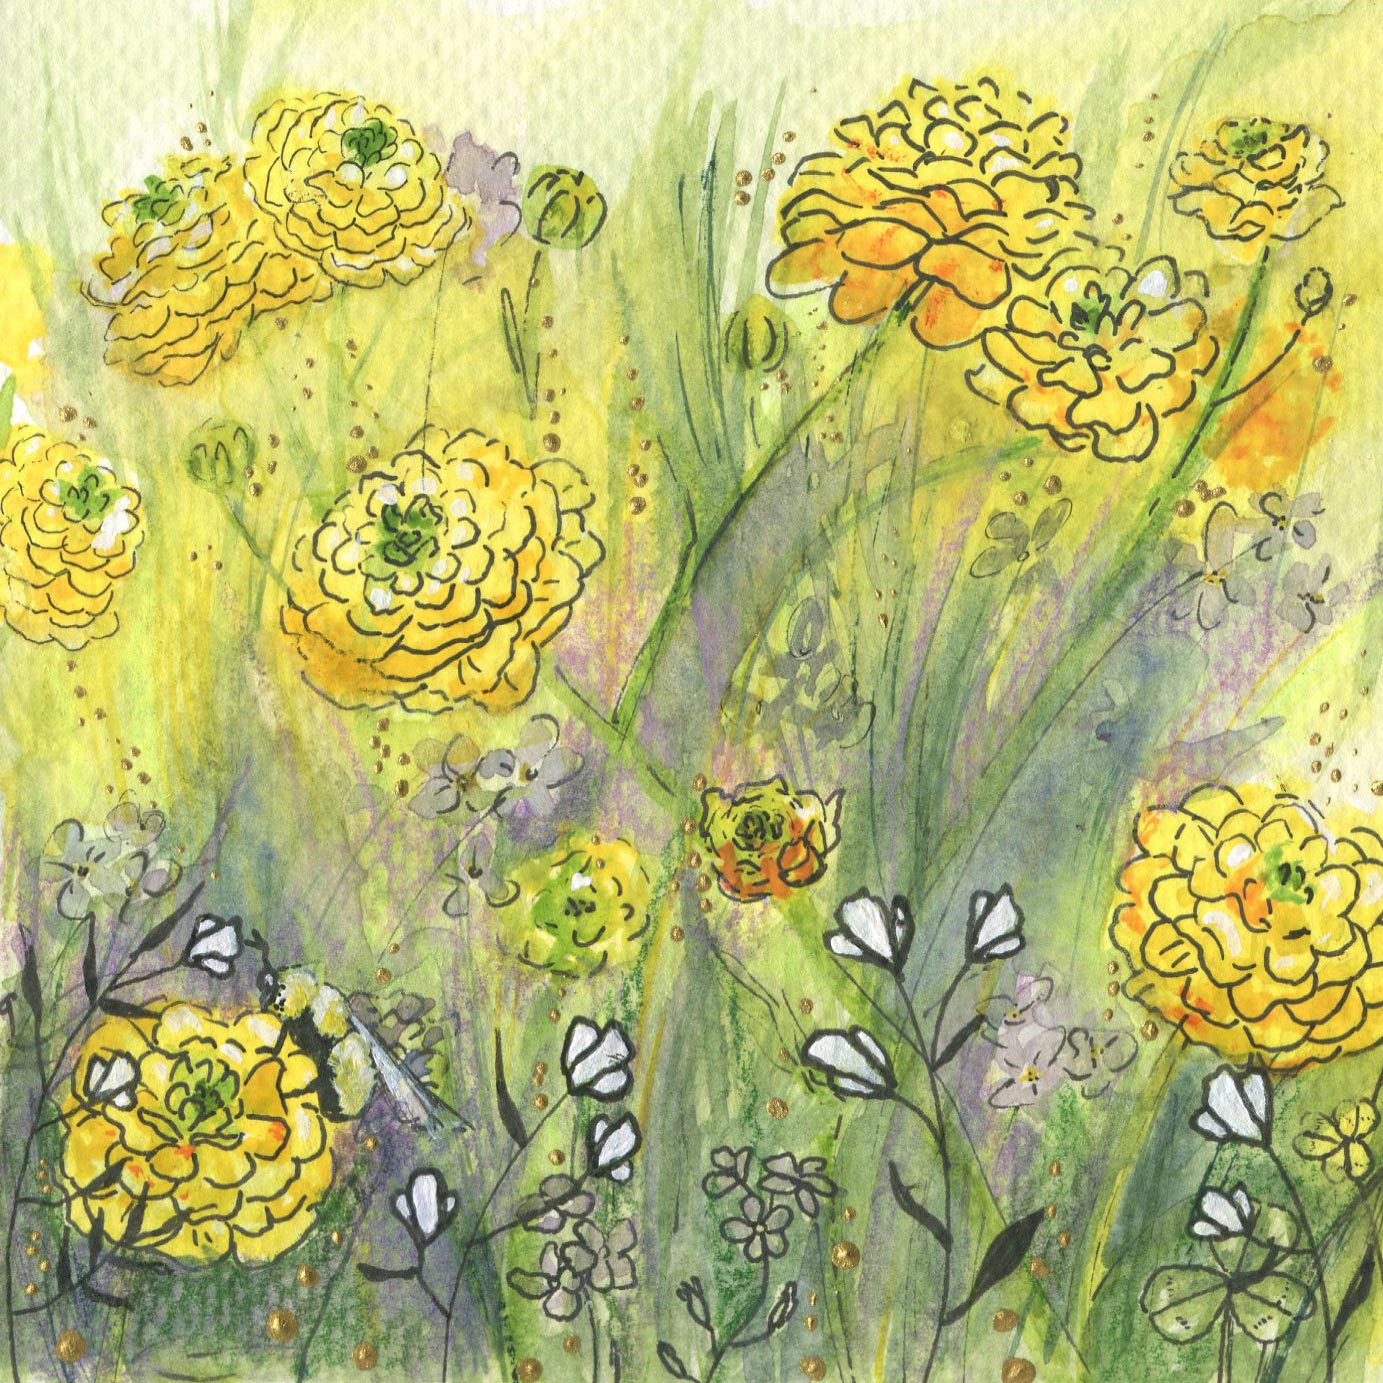 ORIGINAL WATERCOLOR, ACRYLIC AND PEN PAINTING 5X5 Inches, Golden Glow: $65